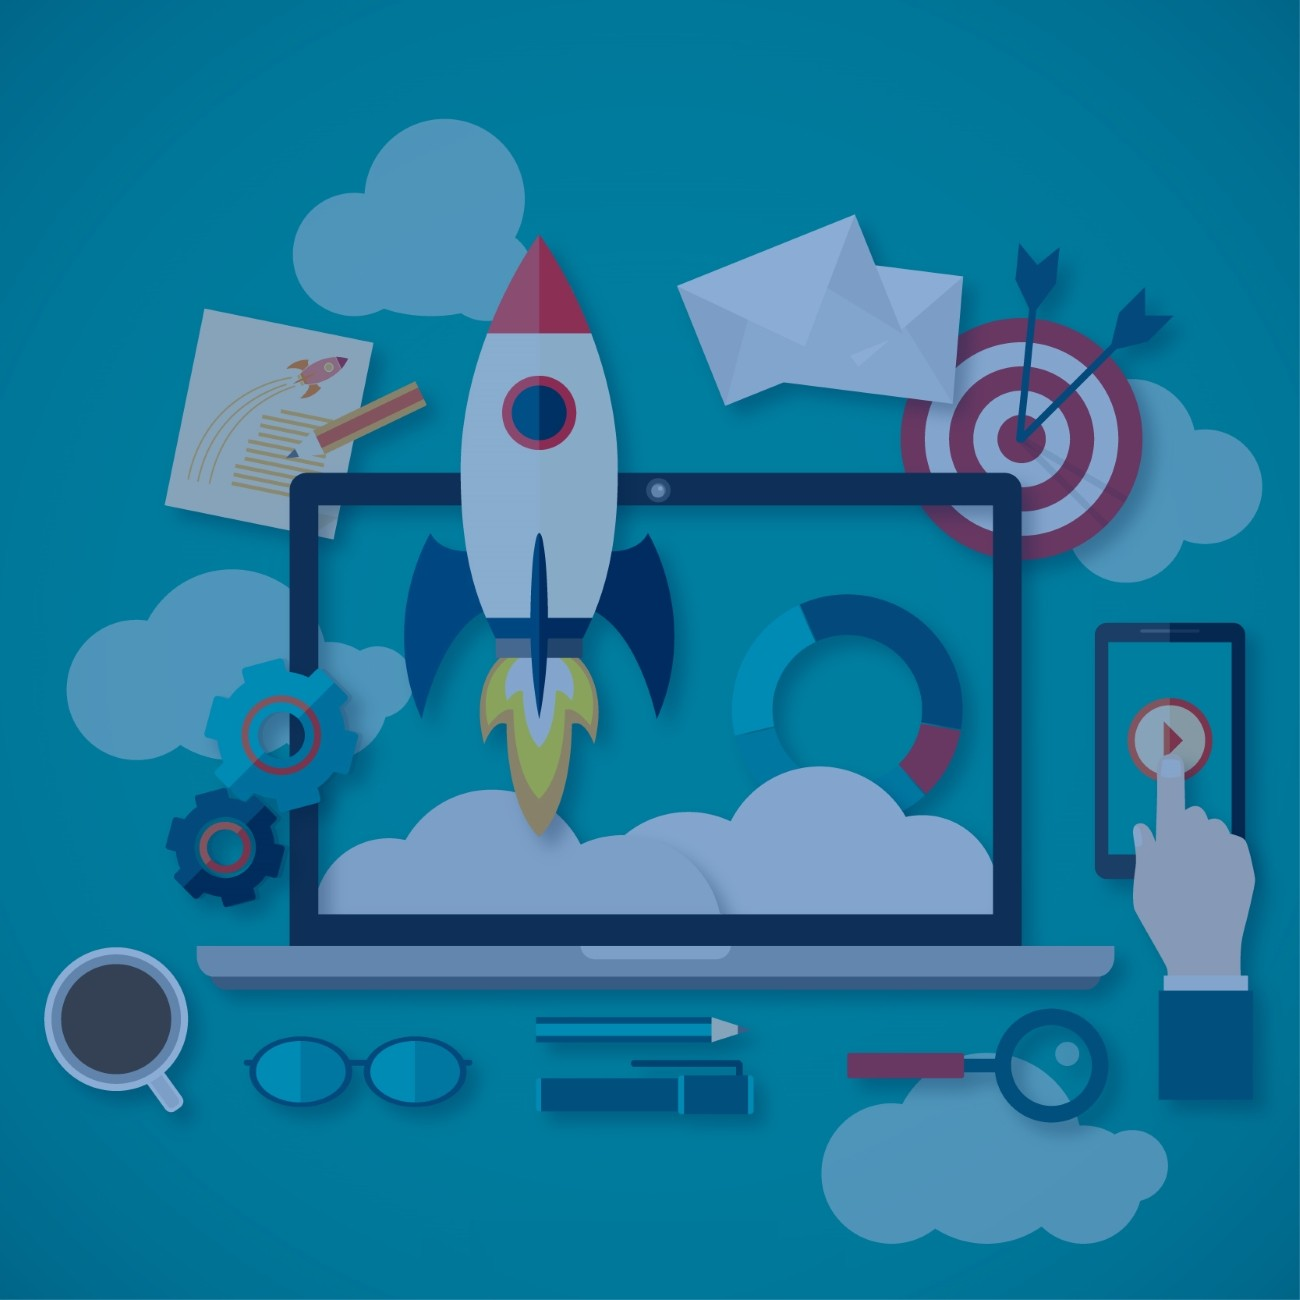 IT Professional Services for your business.